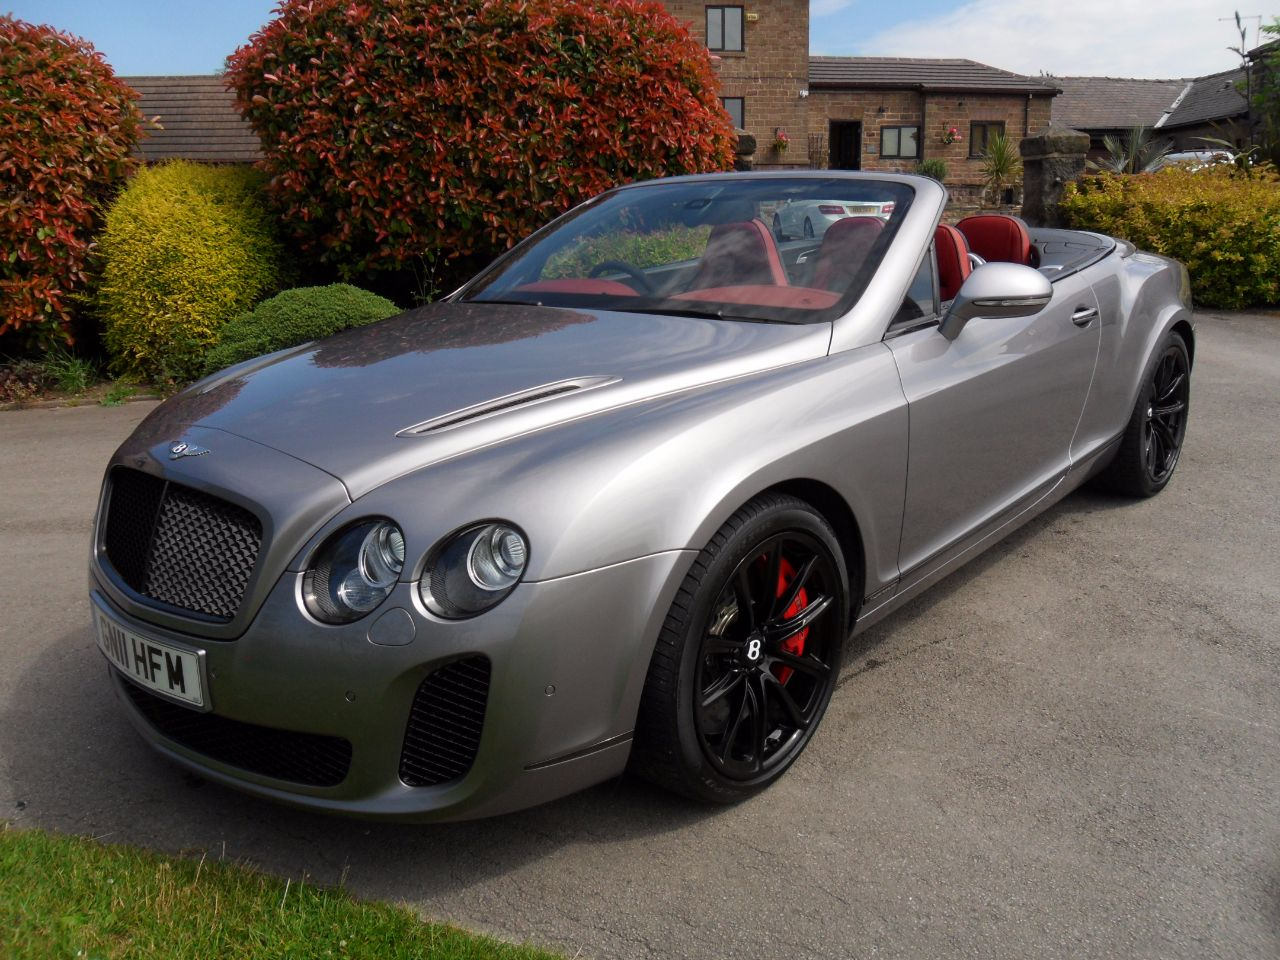 Bentley Continental Gtc 6.0 W12 Supersports 2dr Auto